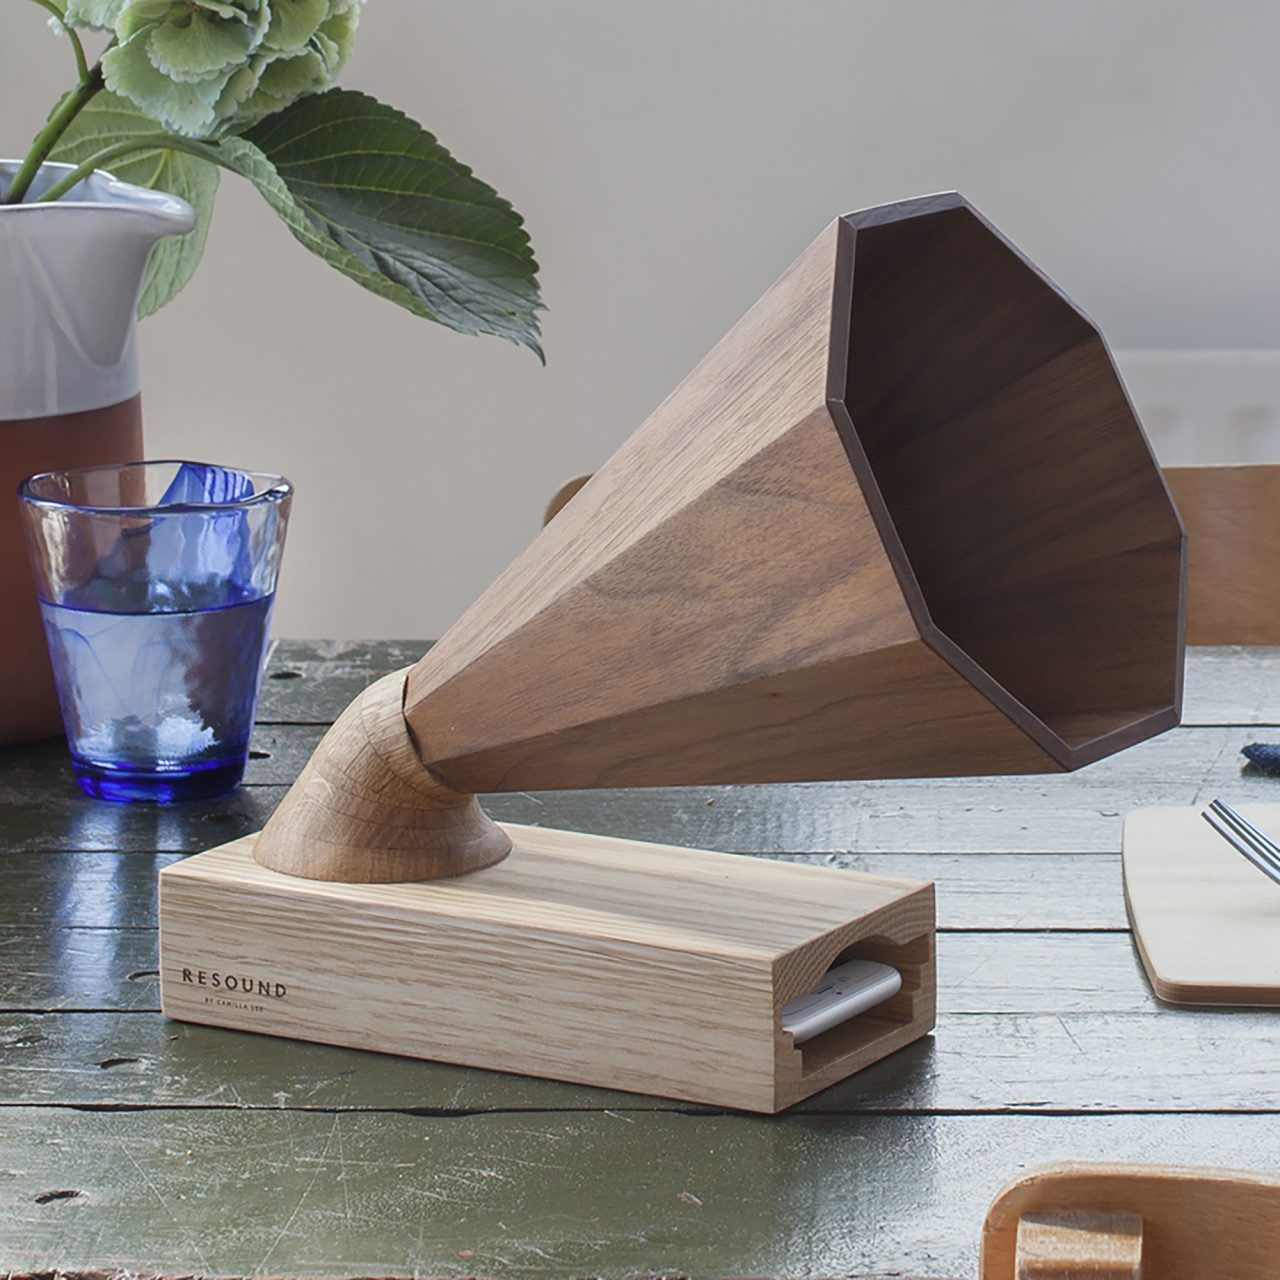 Small Woodworking Projects Part - 42: A Beautiful Handcrafted Wooden Amplifier That Acts As A Speaker For Any  IPhone. The Wood